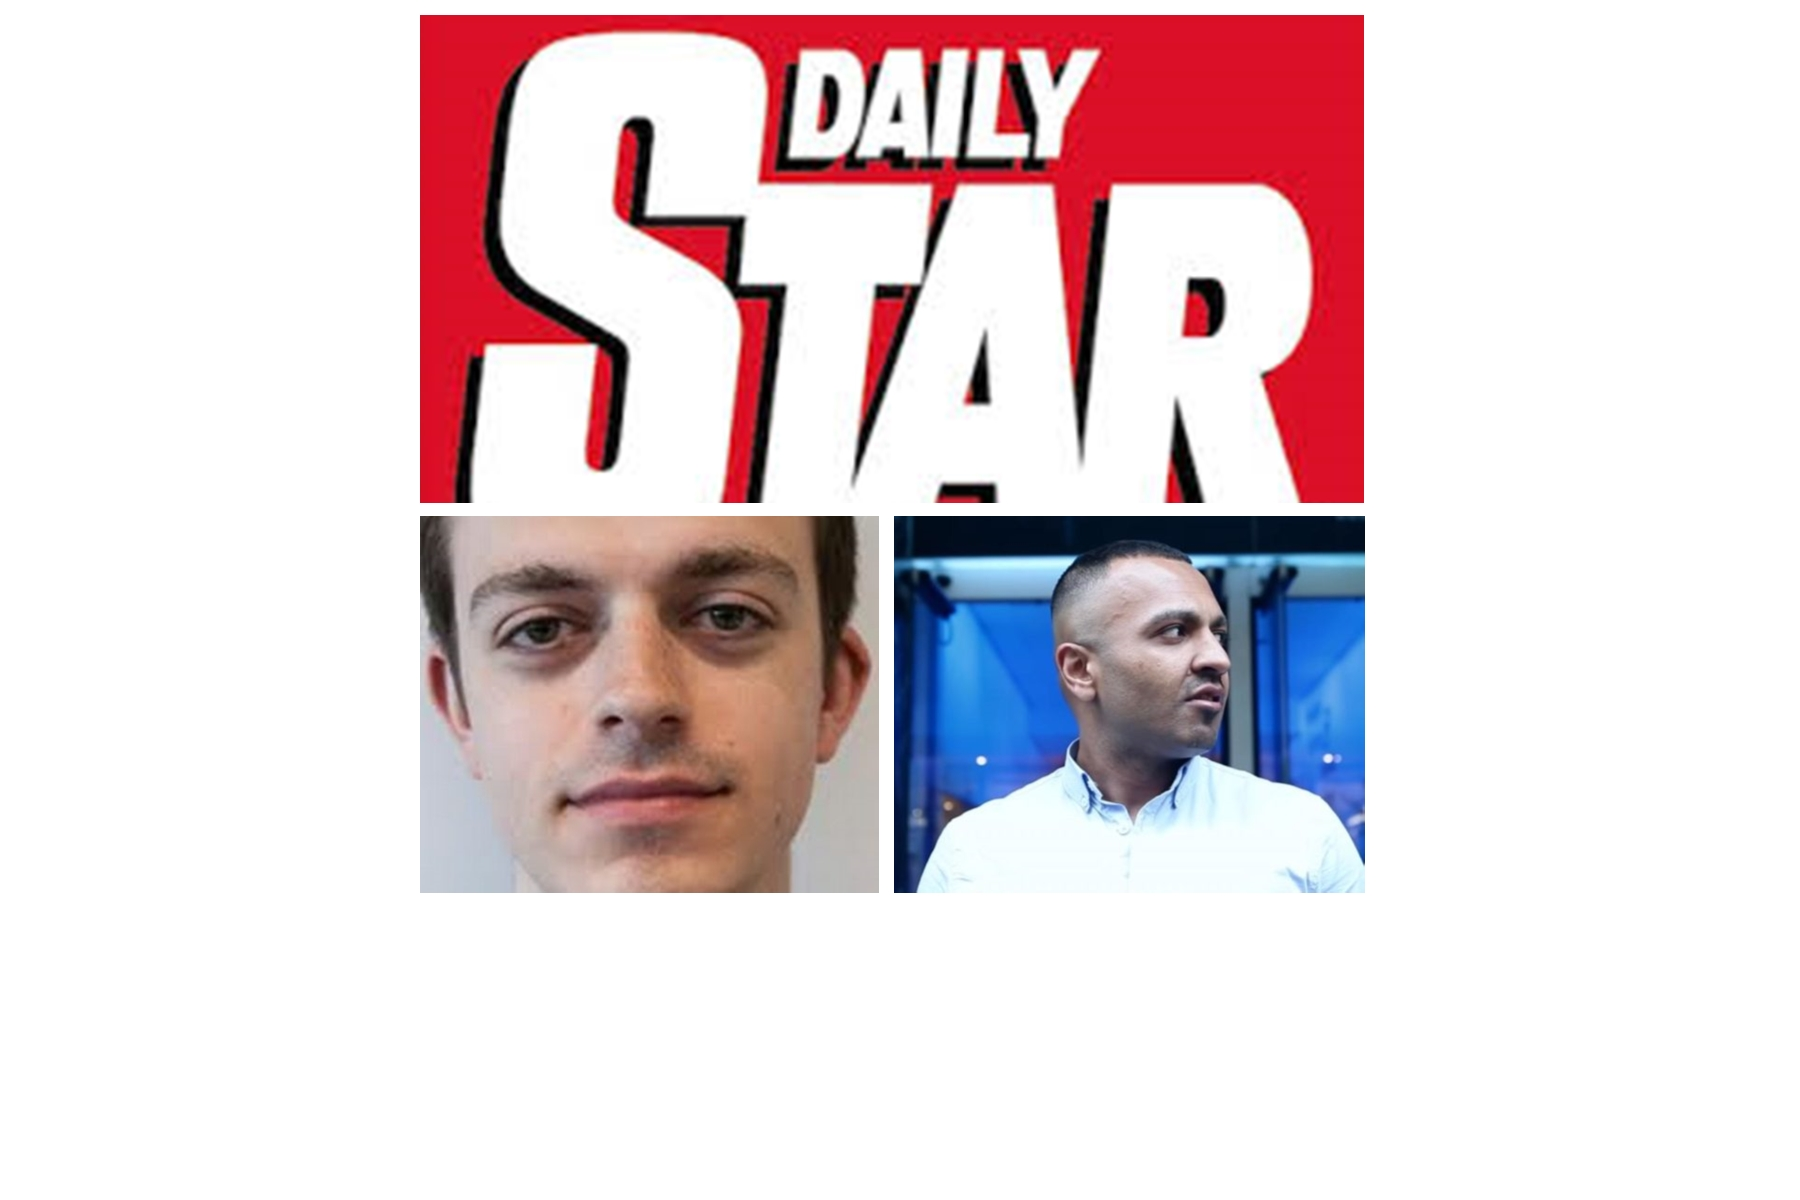 """Creep Predator Reporter Connor Gordon (Daily Star) Targets Innocent Man Agame Writing Story About Him """"Facing Jail / Locked Up"""""""